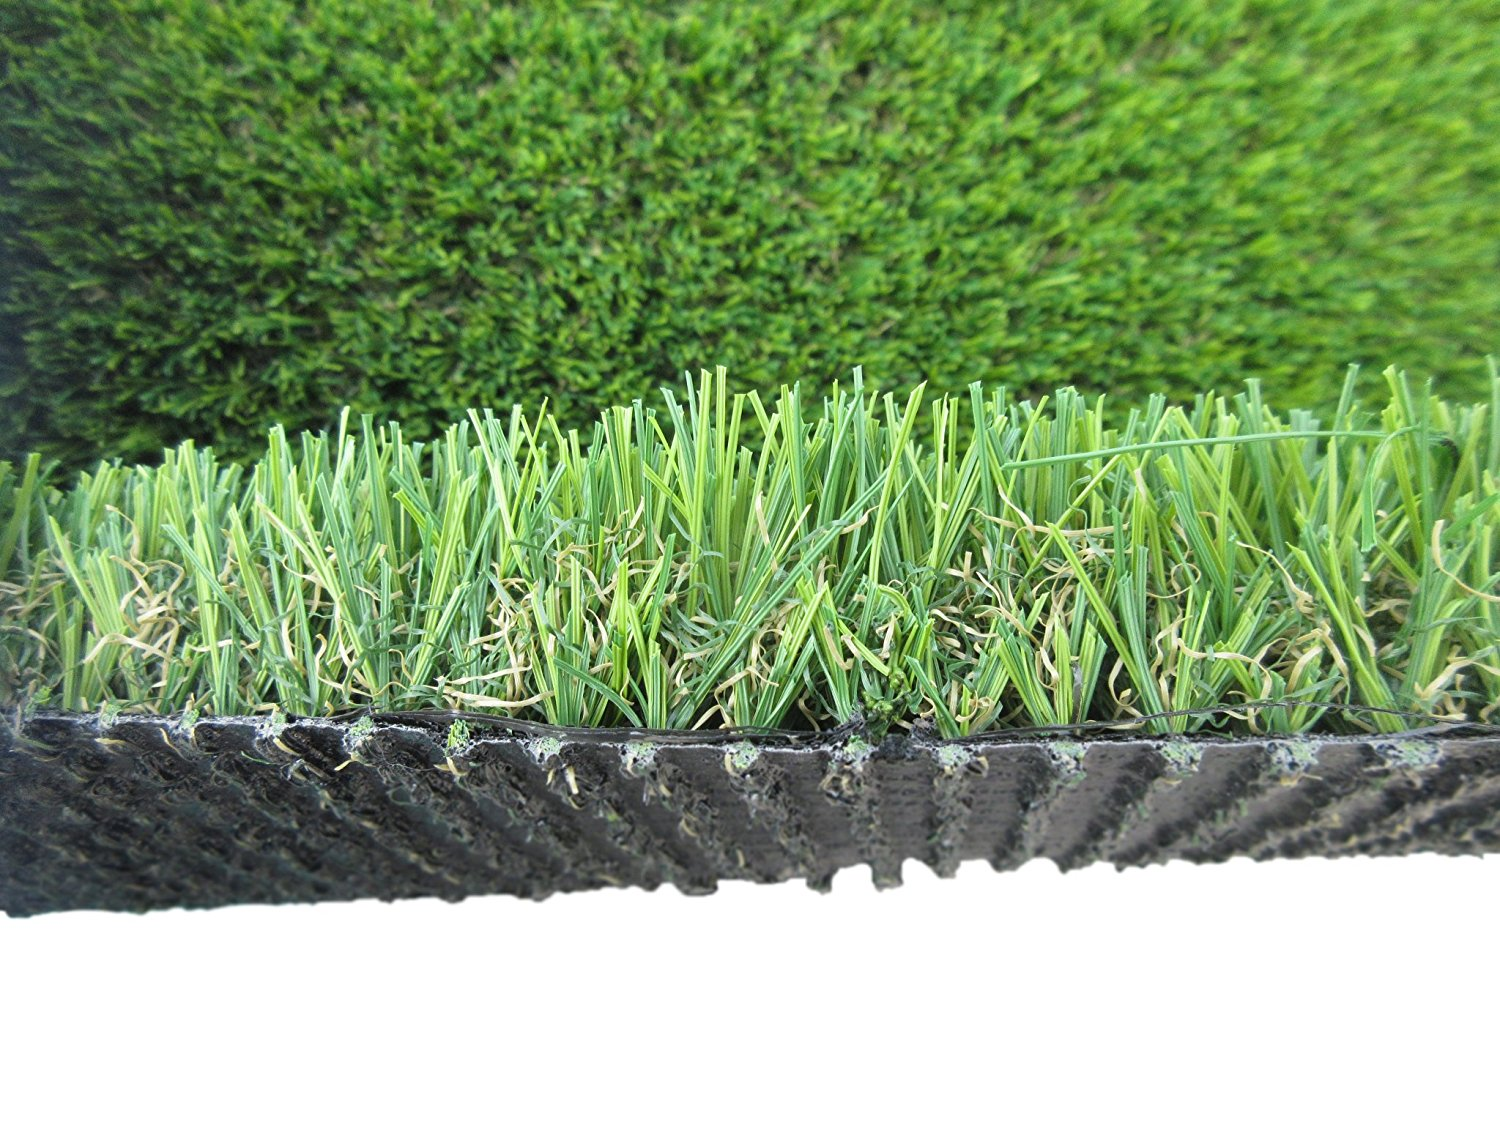 PZG Commerical Artificial Grass Patch w/ Drainage Holes & Rubber Backing | Heavy & Durable Turf | Lead-Free Fake Grass for Dogs or Outdoor Decor | Total Wt. - 83 oz & Face Wt. 55 oz | Roll 82' x 15'